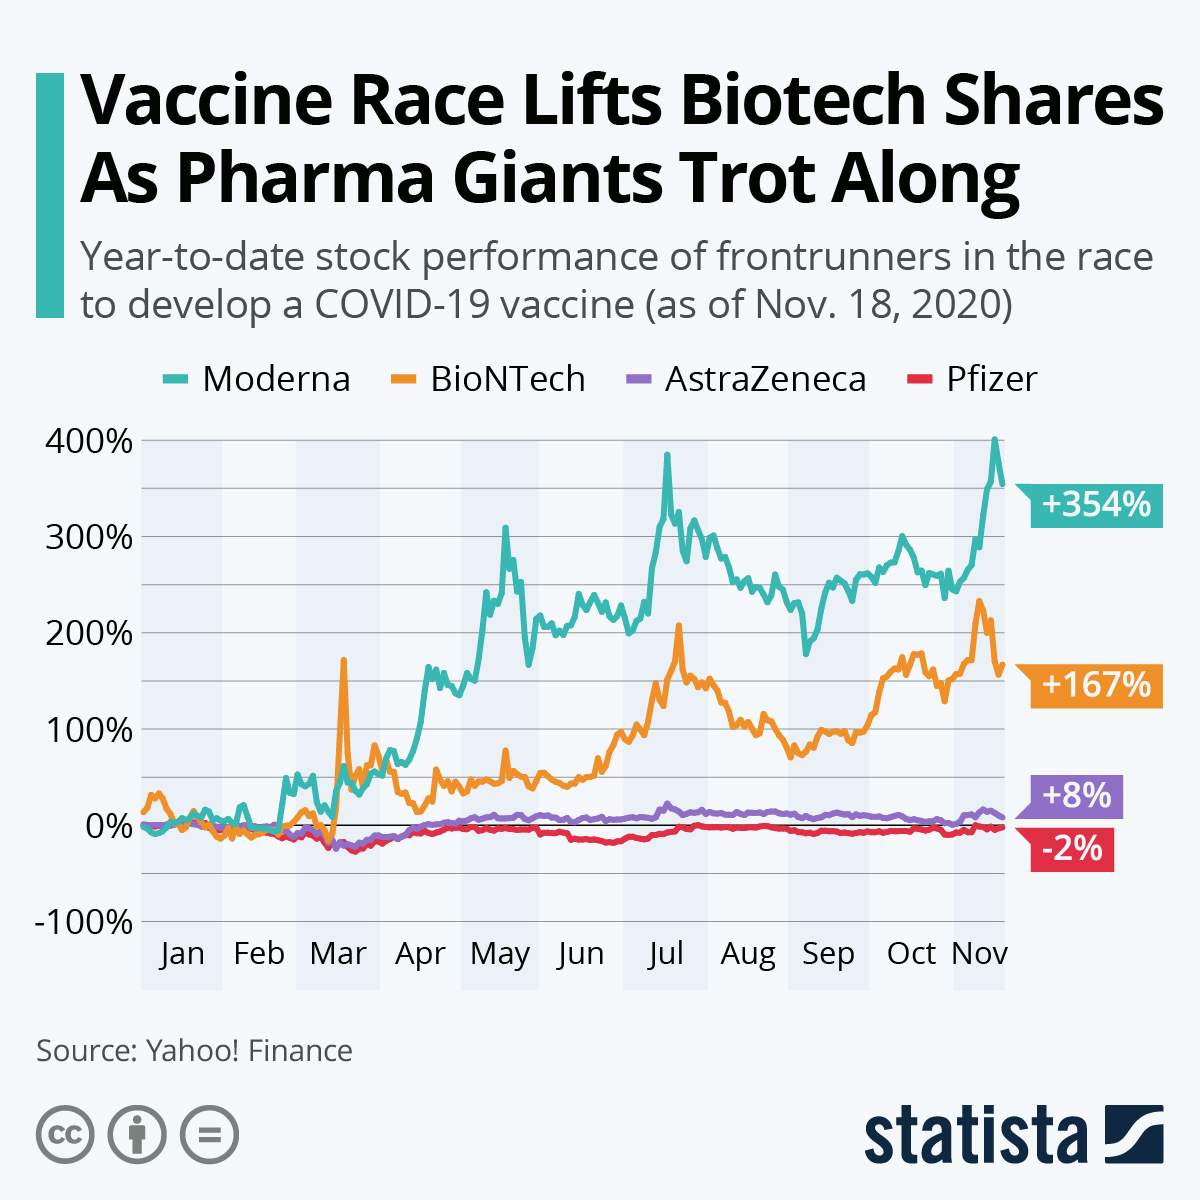 As the race to deliver the first COVID-19 vaccine heats up, many are considering buying shares of the companies currently ahead. The race hasn't given the same boost to all companies. While Moderna & BioNTech saw their share price soar, Pfizer & AstraZeneca merely trotted along. https://t.co/xIUXIe5Cn5